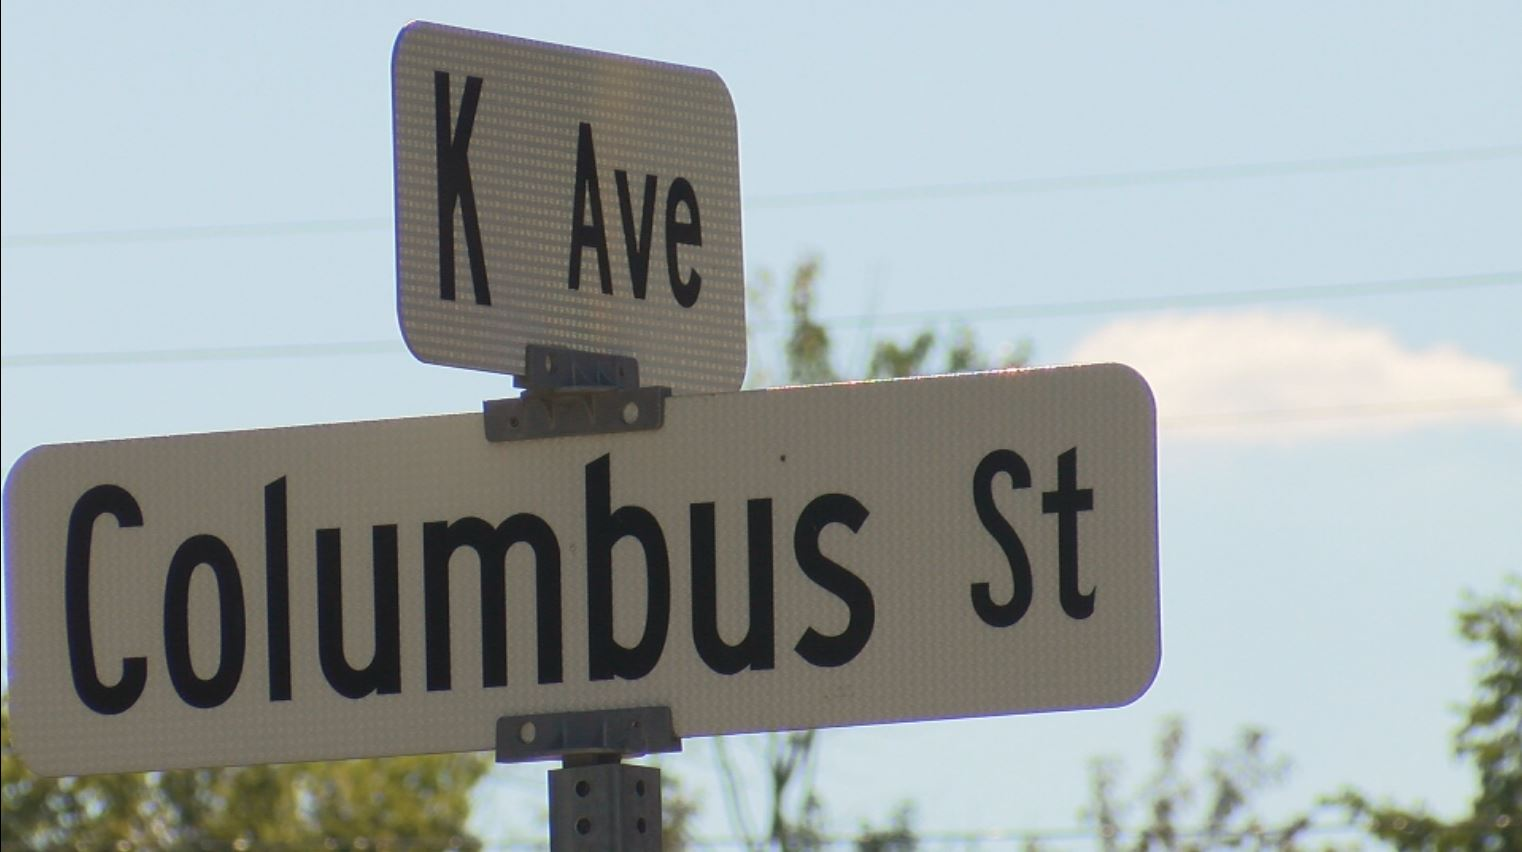 K ave and Columbus st_724915